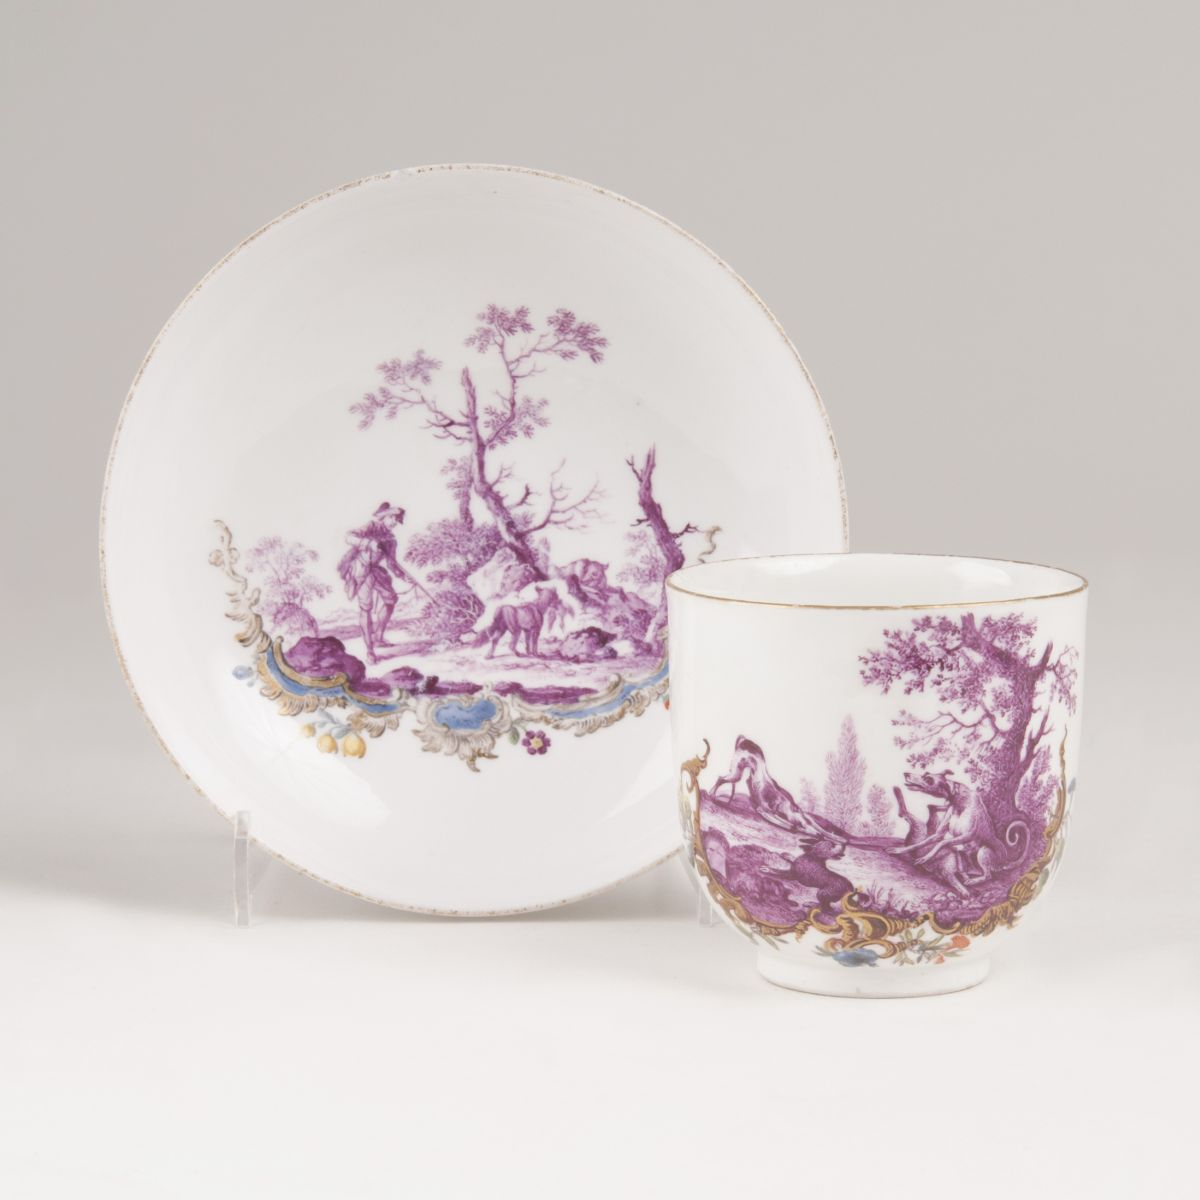 A Cup with Hunting Scenes in Purple Monochrome